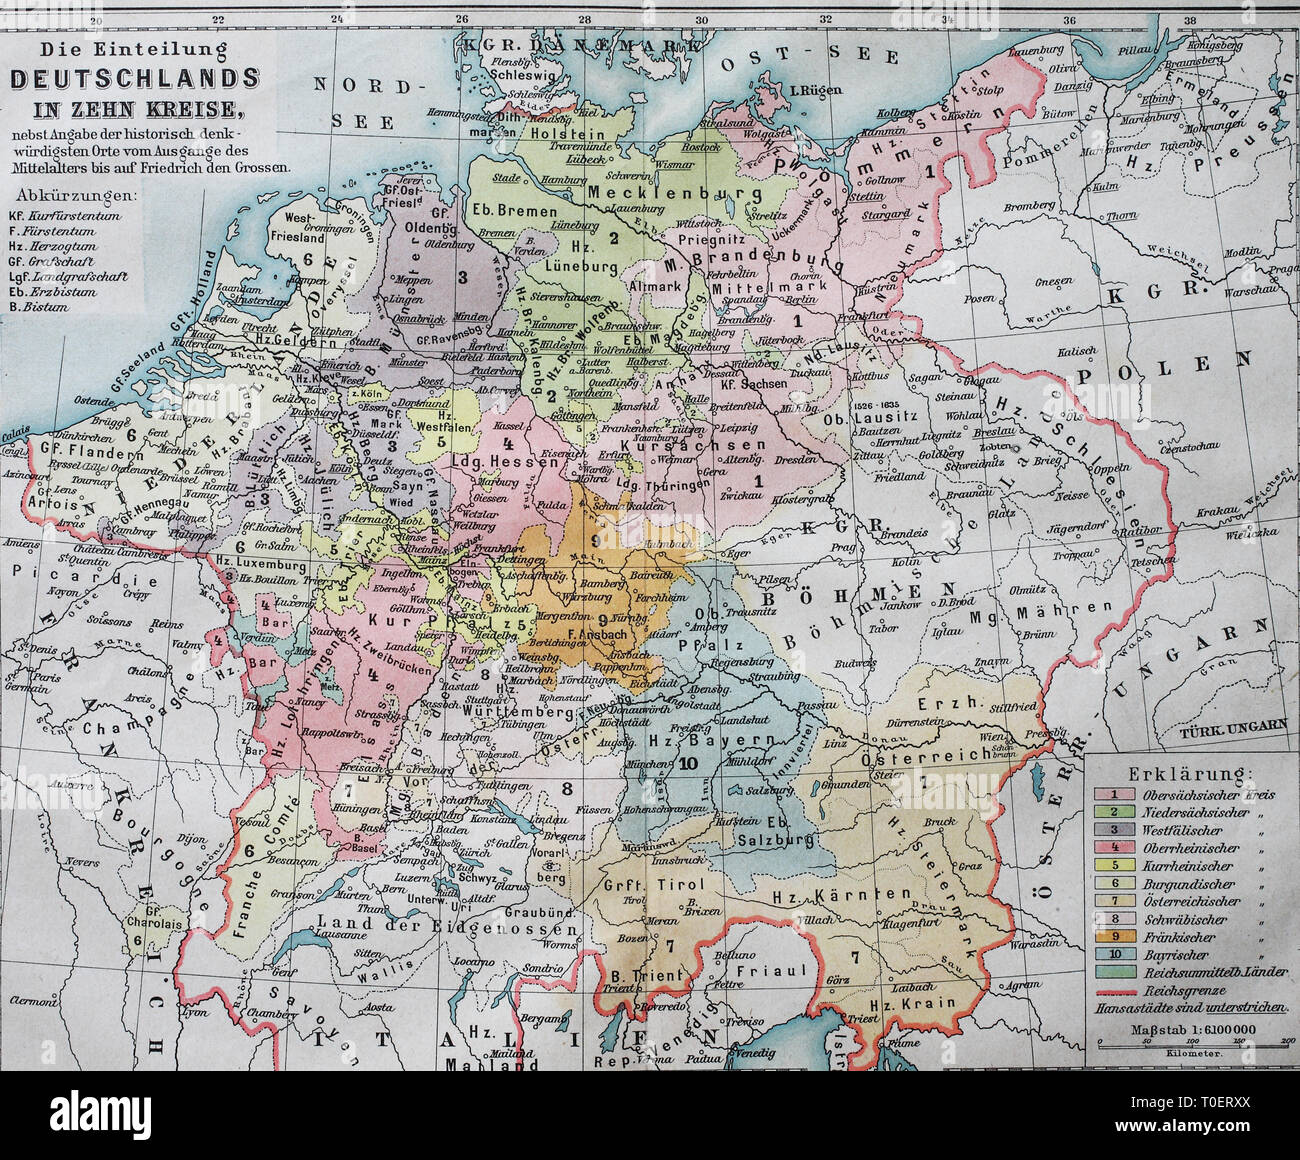 deutschland 16 jahrhundert karte Historic map dividing Germany into ten districts in the 16th